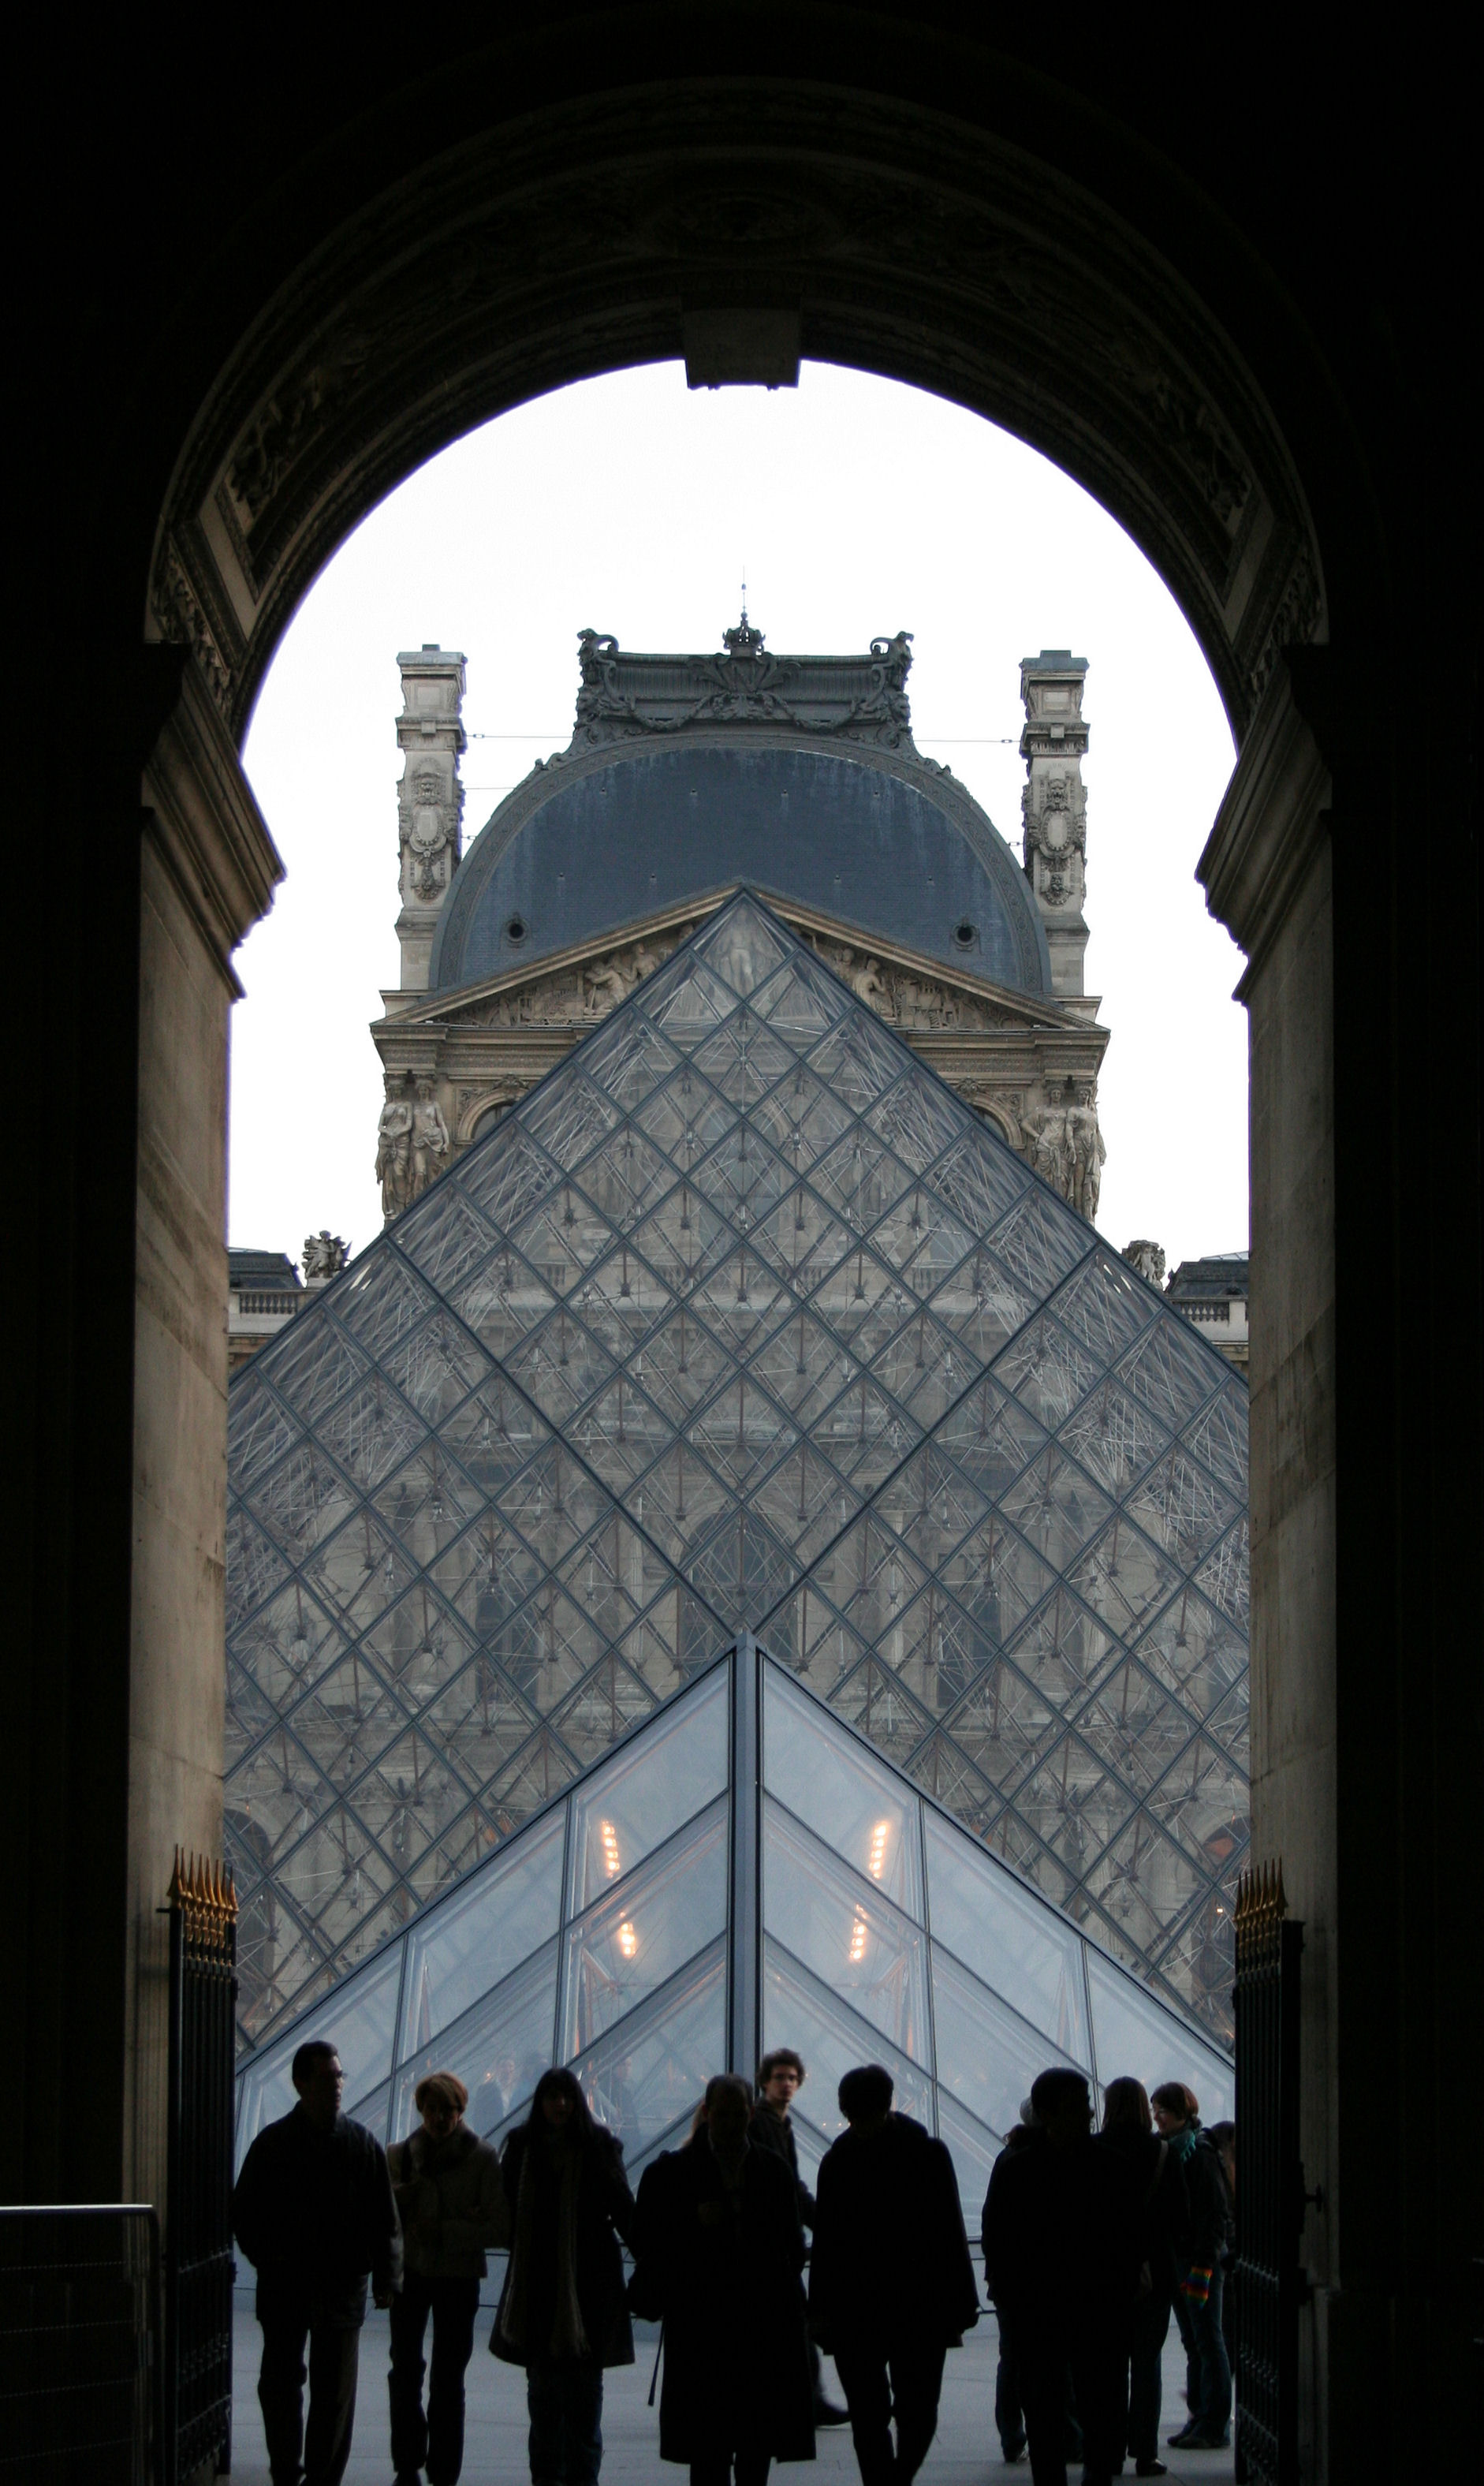 Louvre pyramids viewed from passage